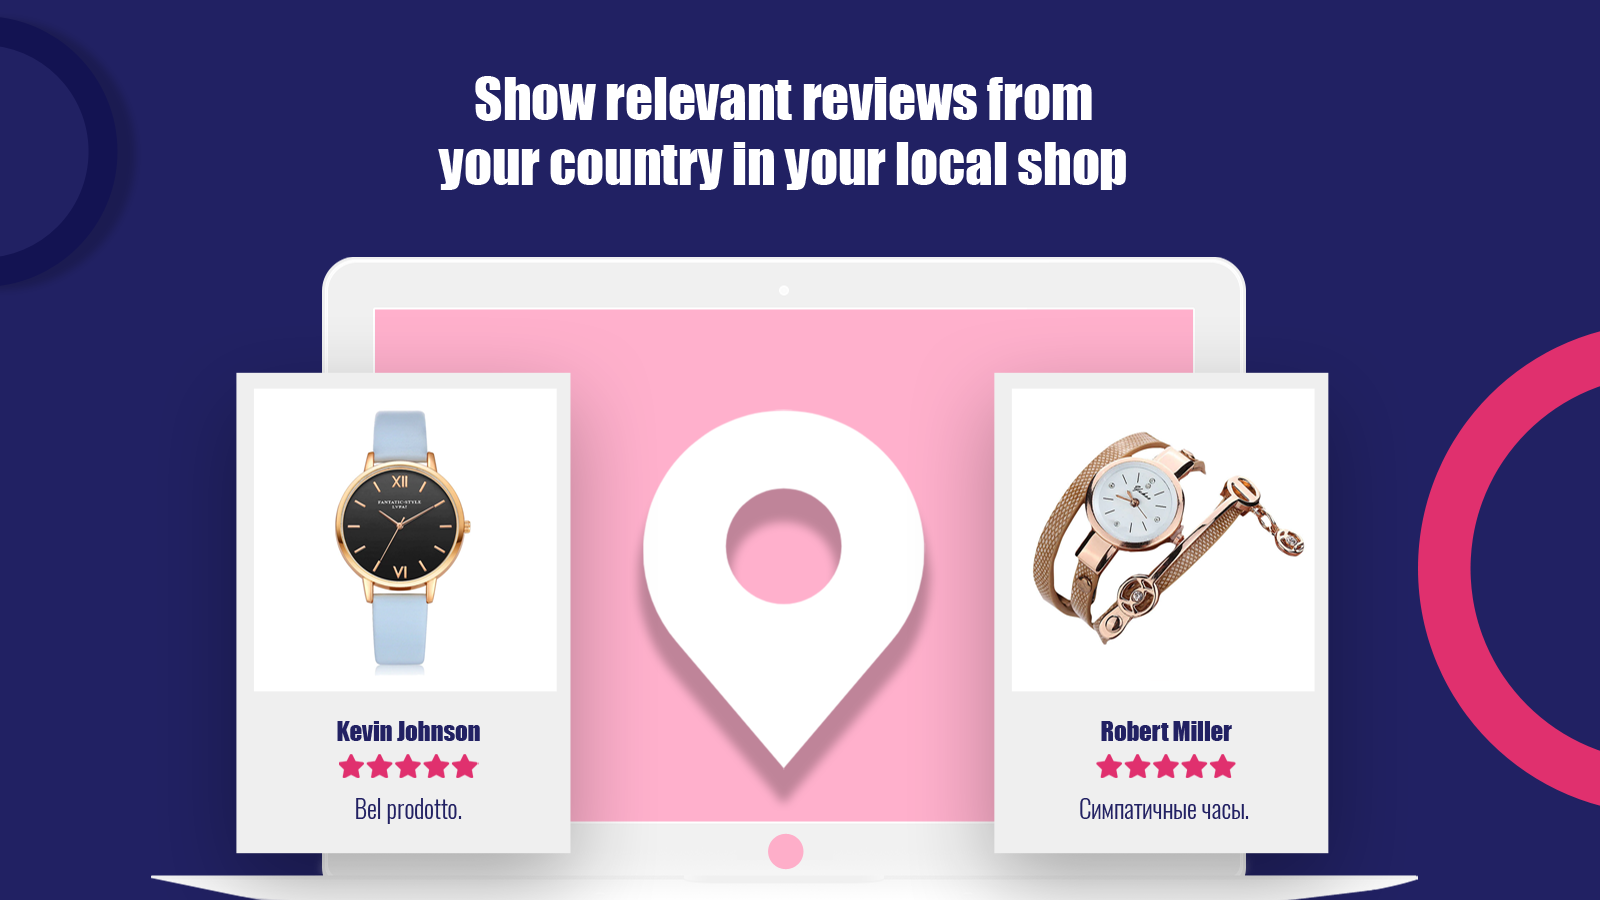 Show relevant reviews from your country in your local shop